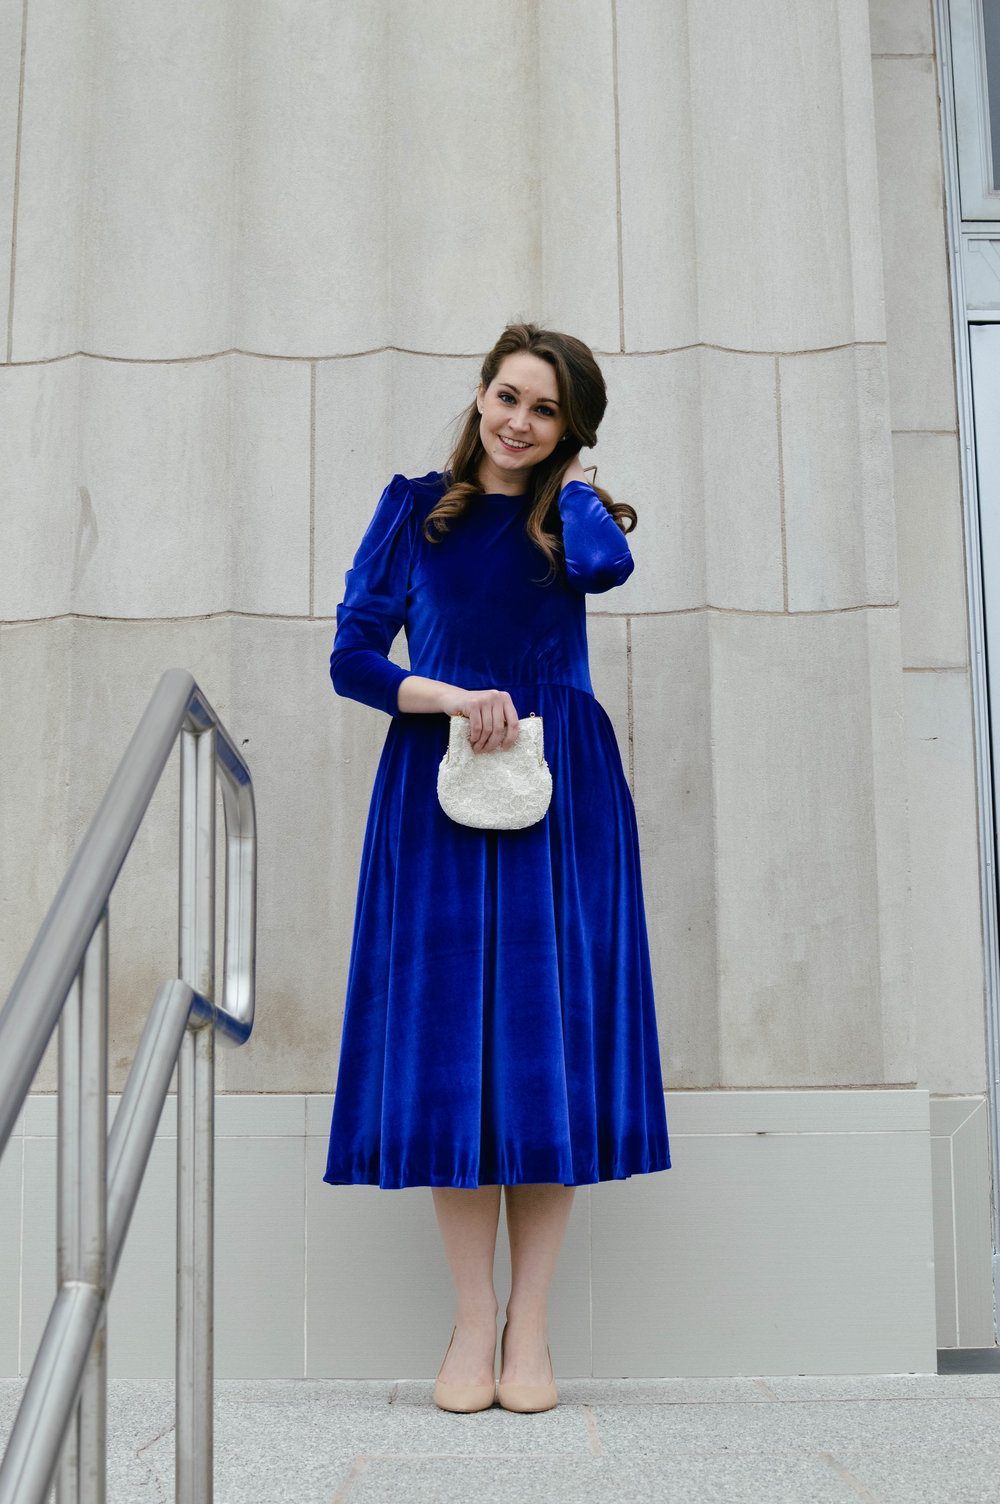 Blue Velvet Dress (25 of 47).jpg